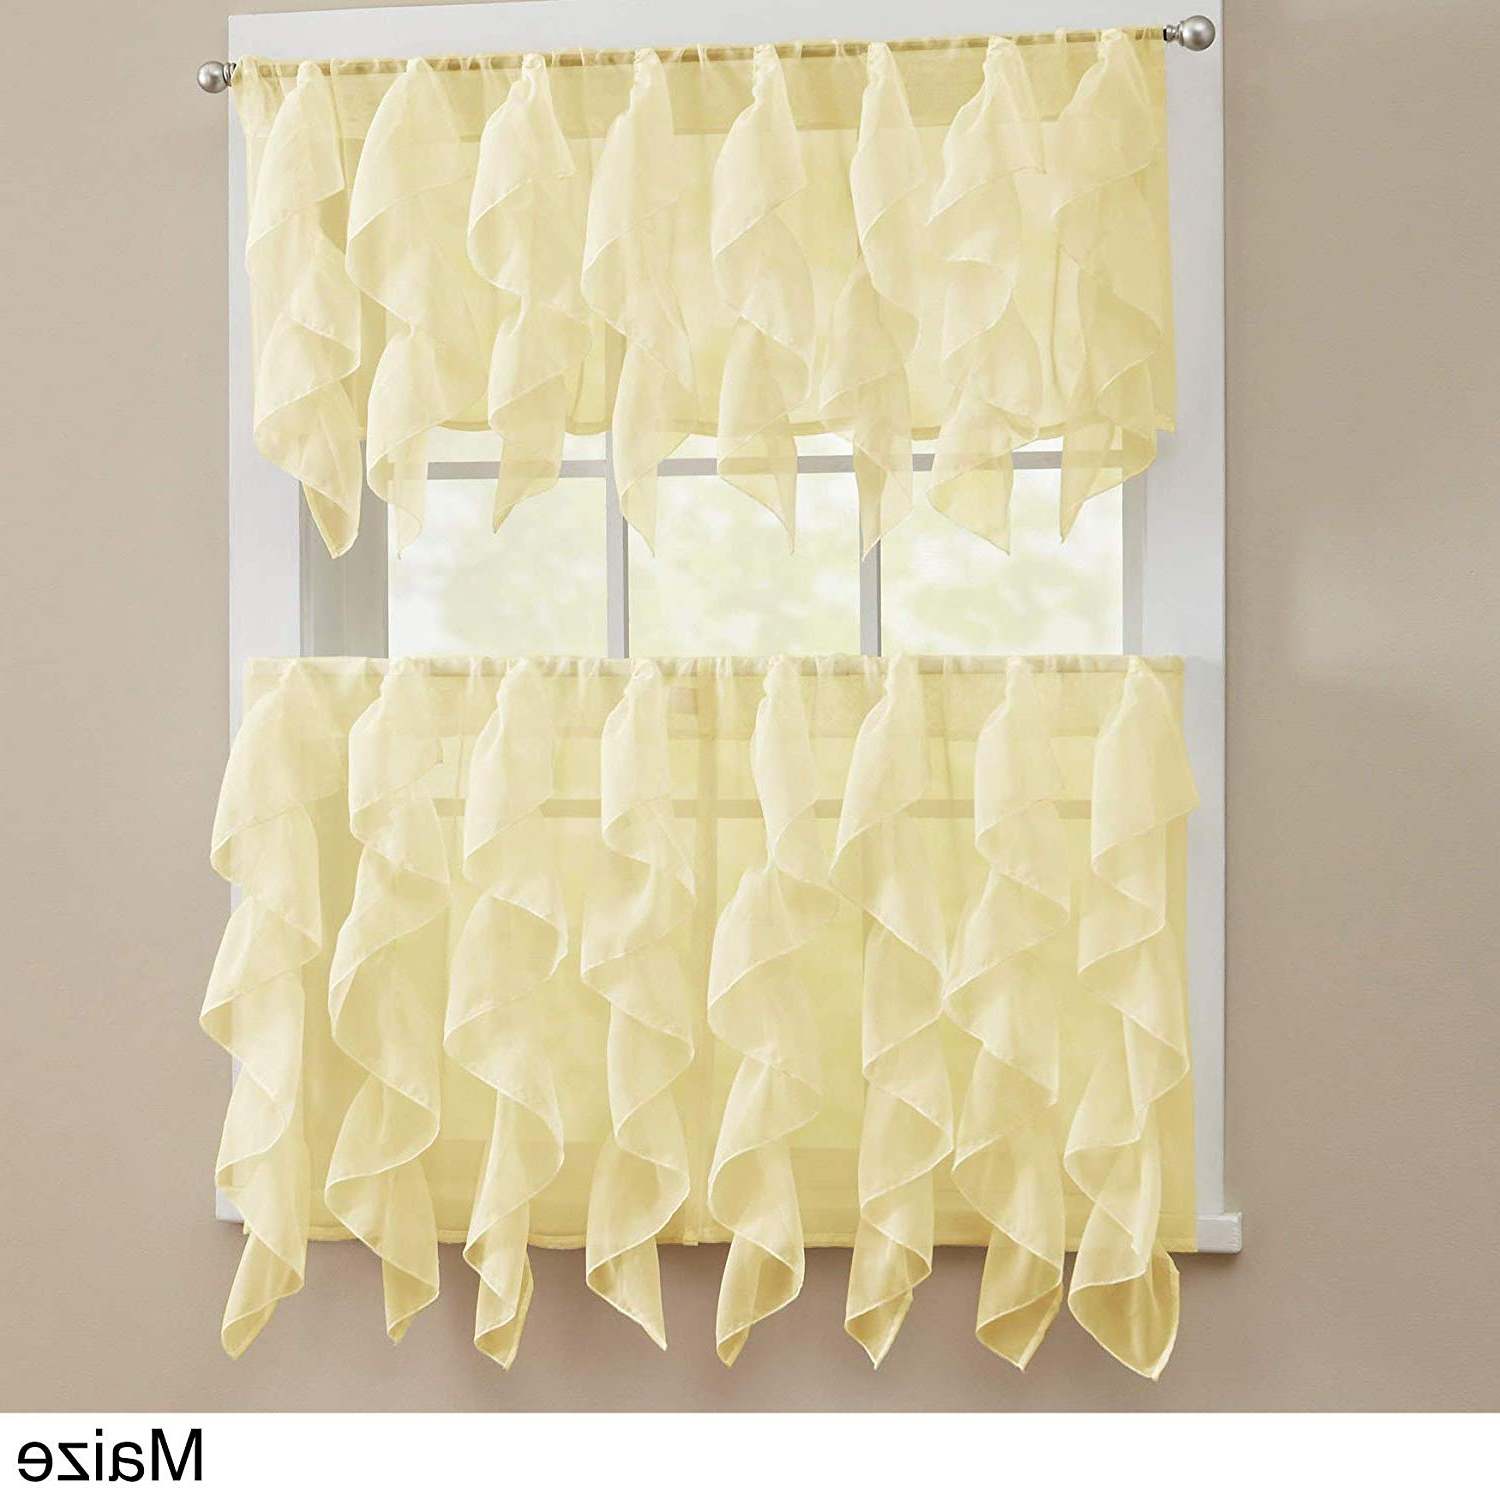 Newest Bed Bath N More Chic Sheer Voile Vertical Ruffled Tier Window Curtain Valance And Tier White 56 X 12 With Regard To Maize Vertical Ruffled Waterfall Valance And Curtain Tiers (View 12 of 20)